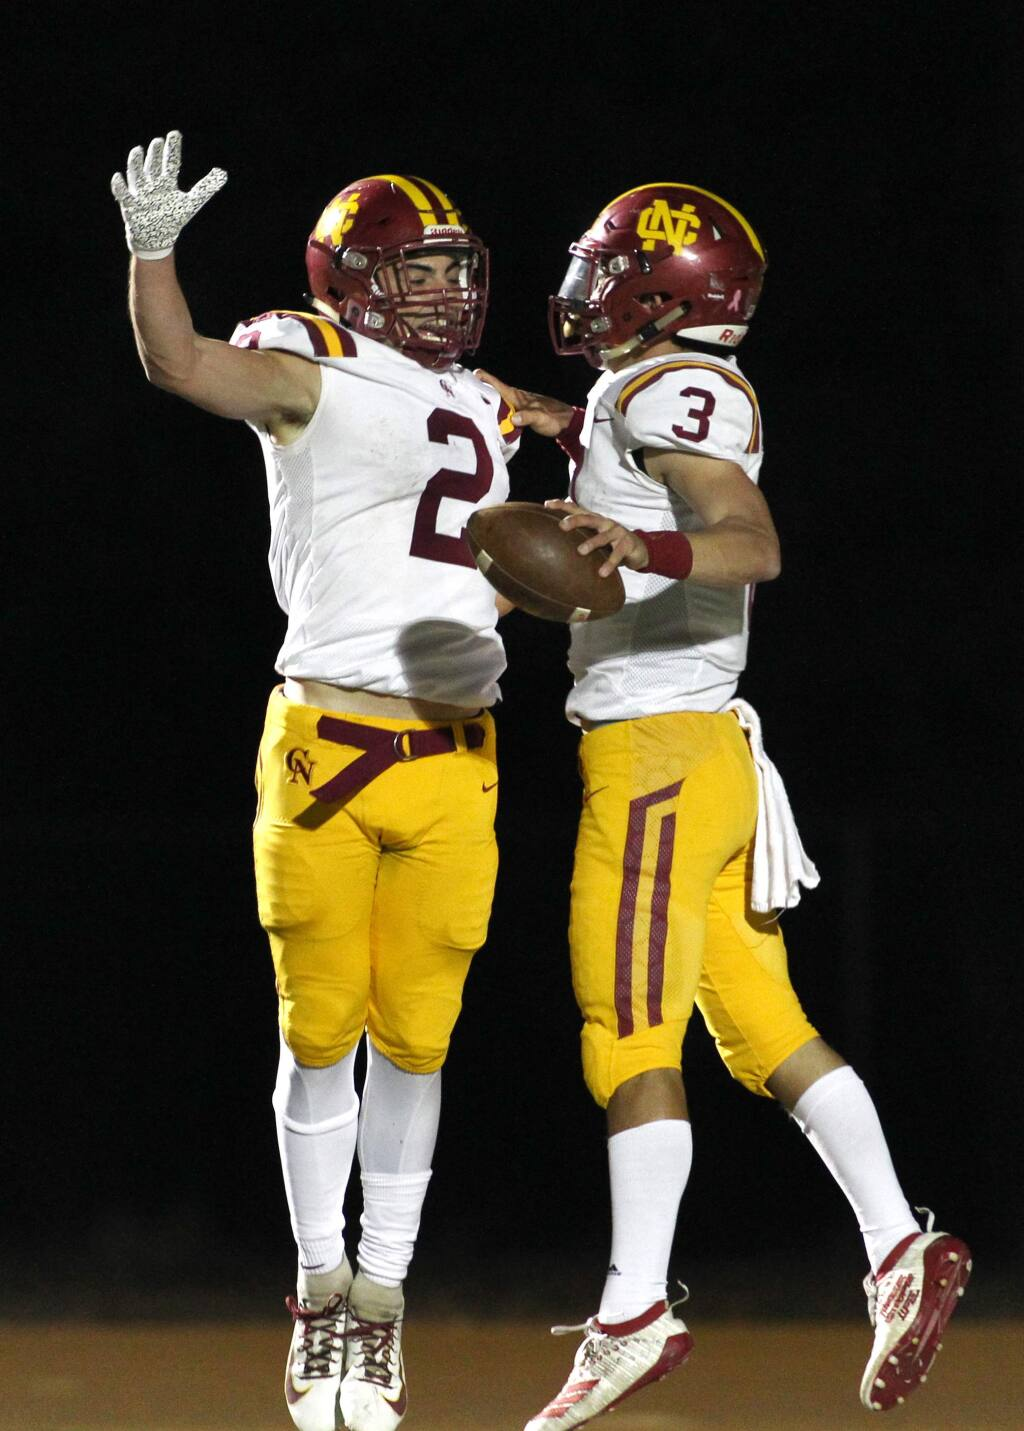 Cardinal Newman's Giancarlo Woods (2) and Jackson Pavitt (3) celebrate a touchdown by Pavitt against Maria Carrillo in Santa Rosa on Monday, Nov. 4, 2019. (Photo by Darryl Bush / For The Press Democrat)